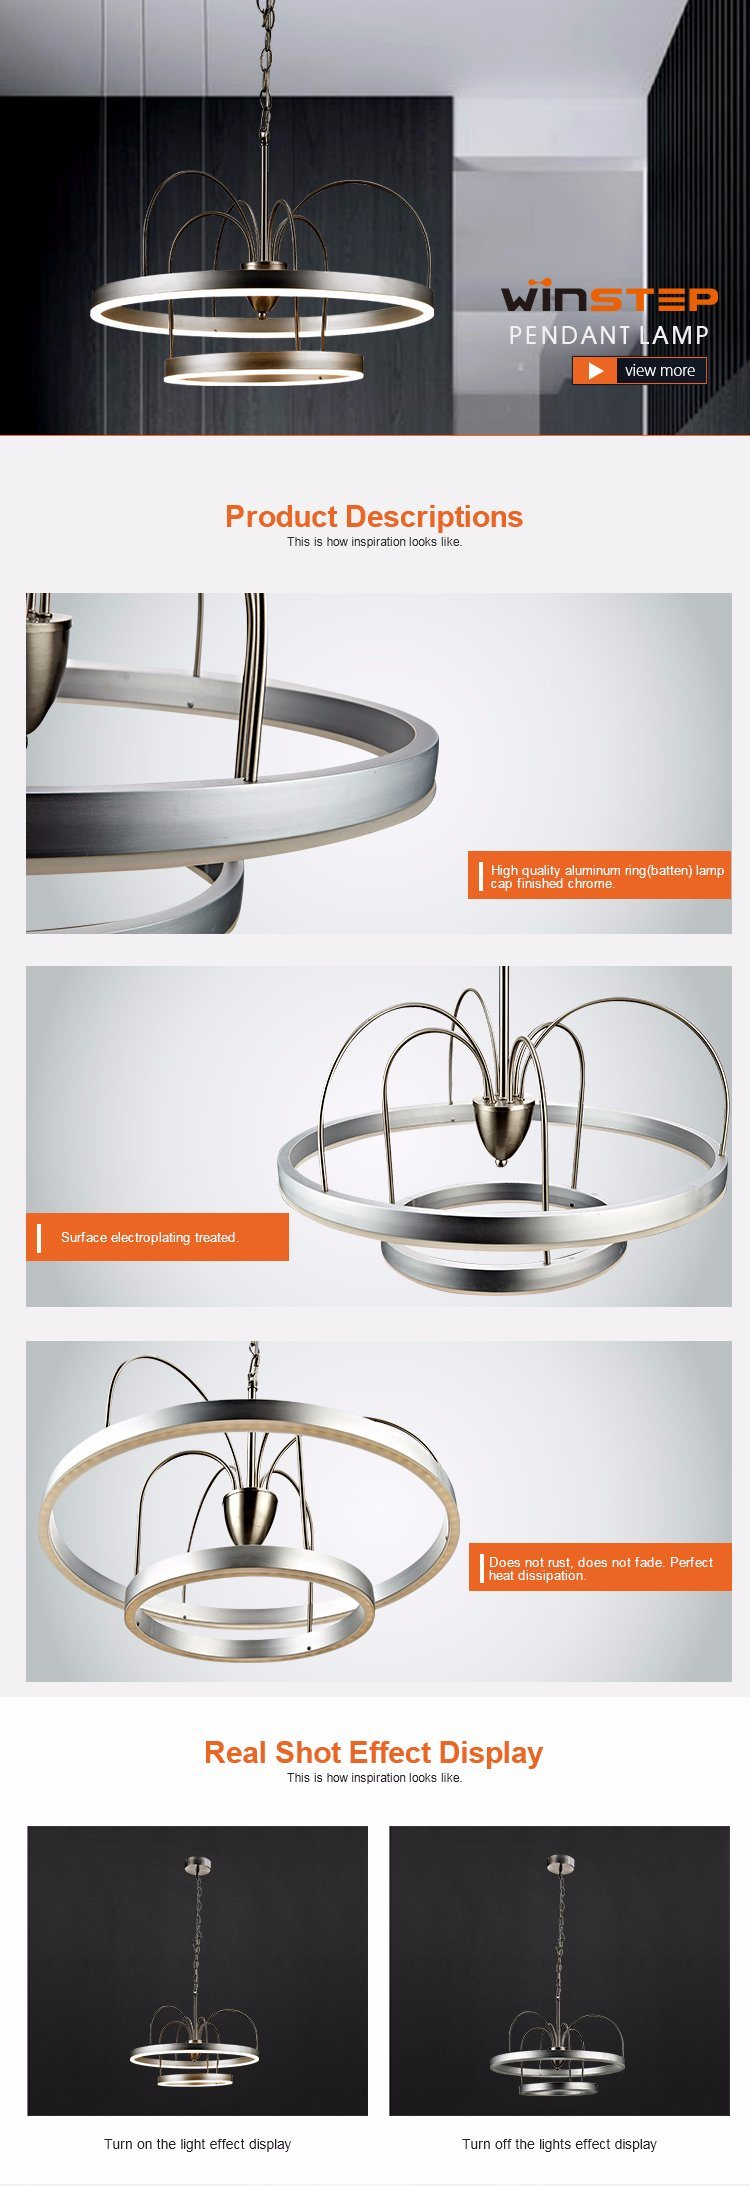 Wholesale 3000k Aluminum Acrylic Lighting Double Ring LED Pendant Lamp